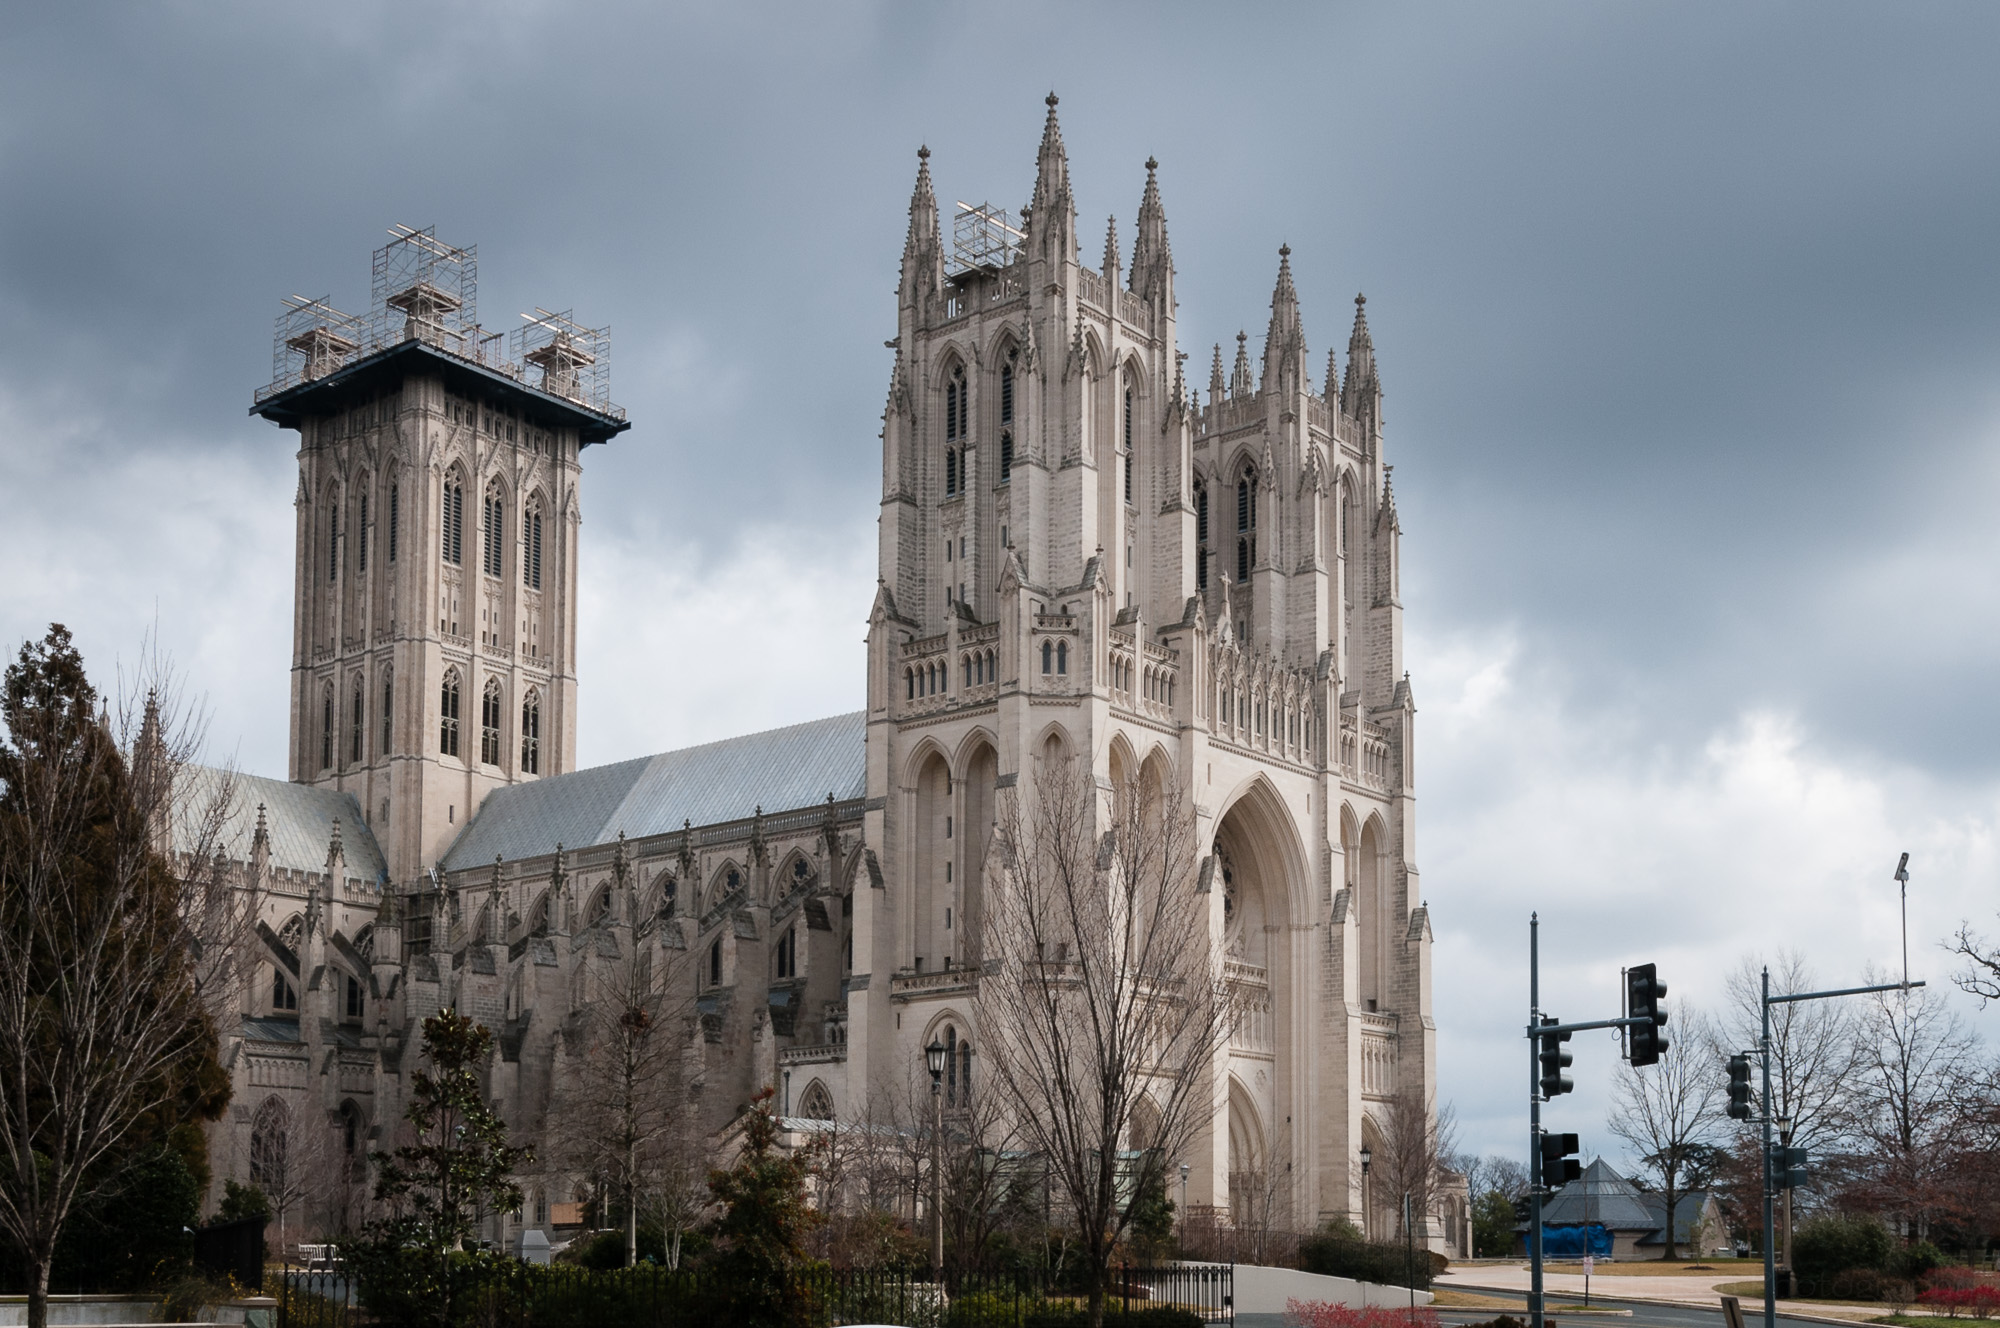 Washington National Cathedral viewed from across the street.